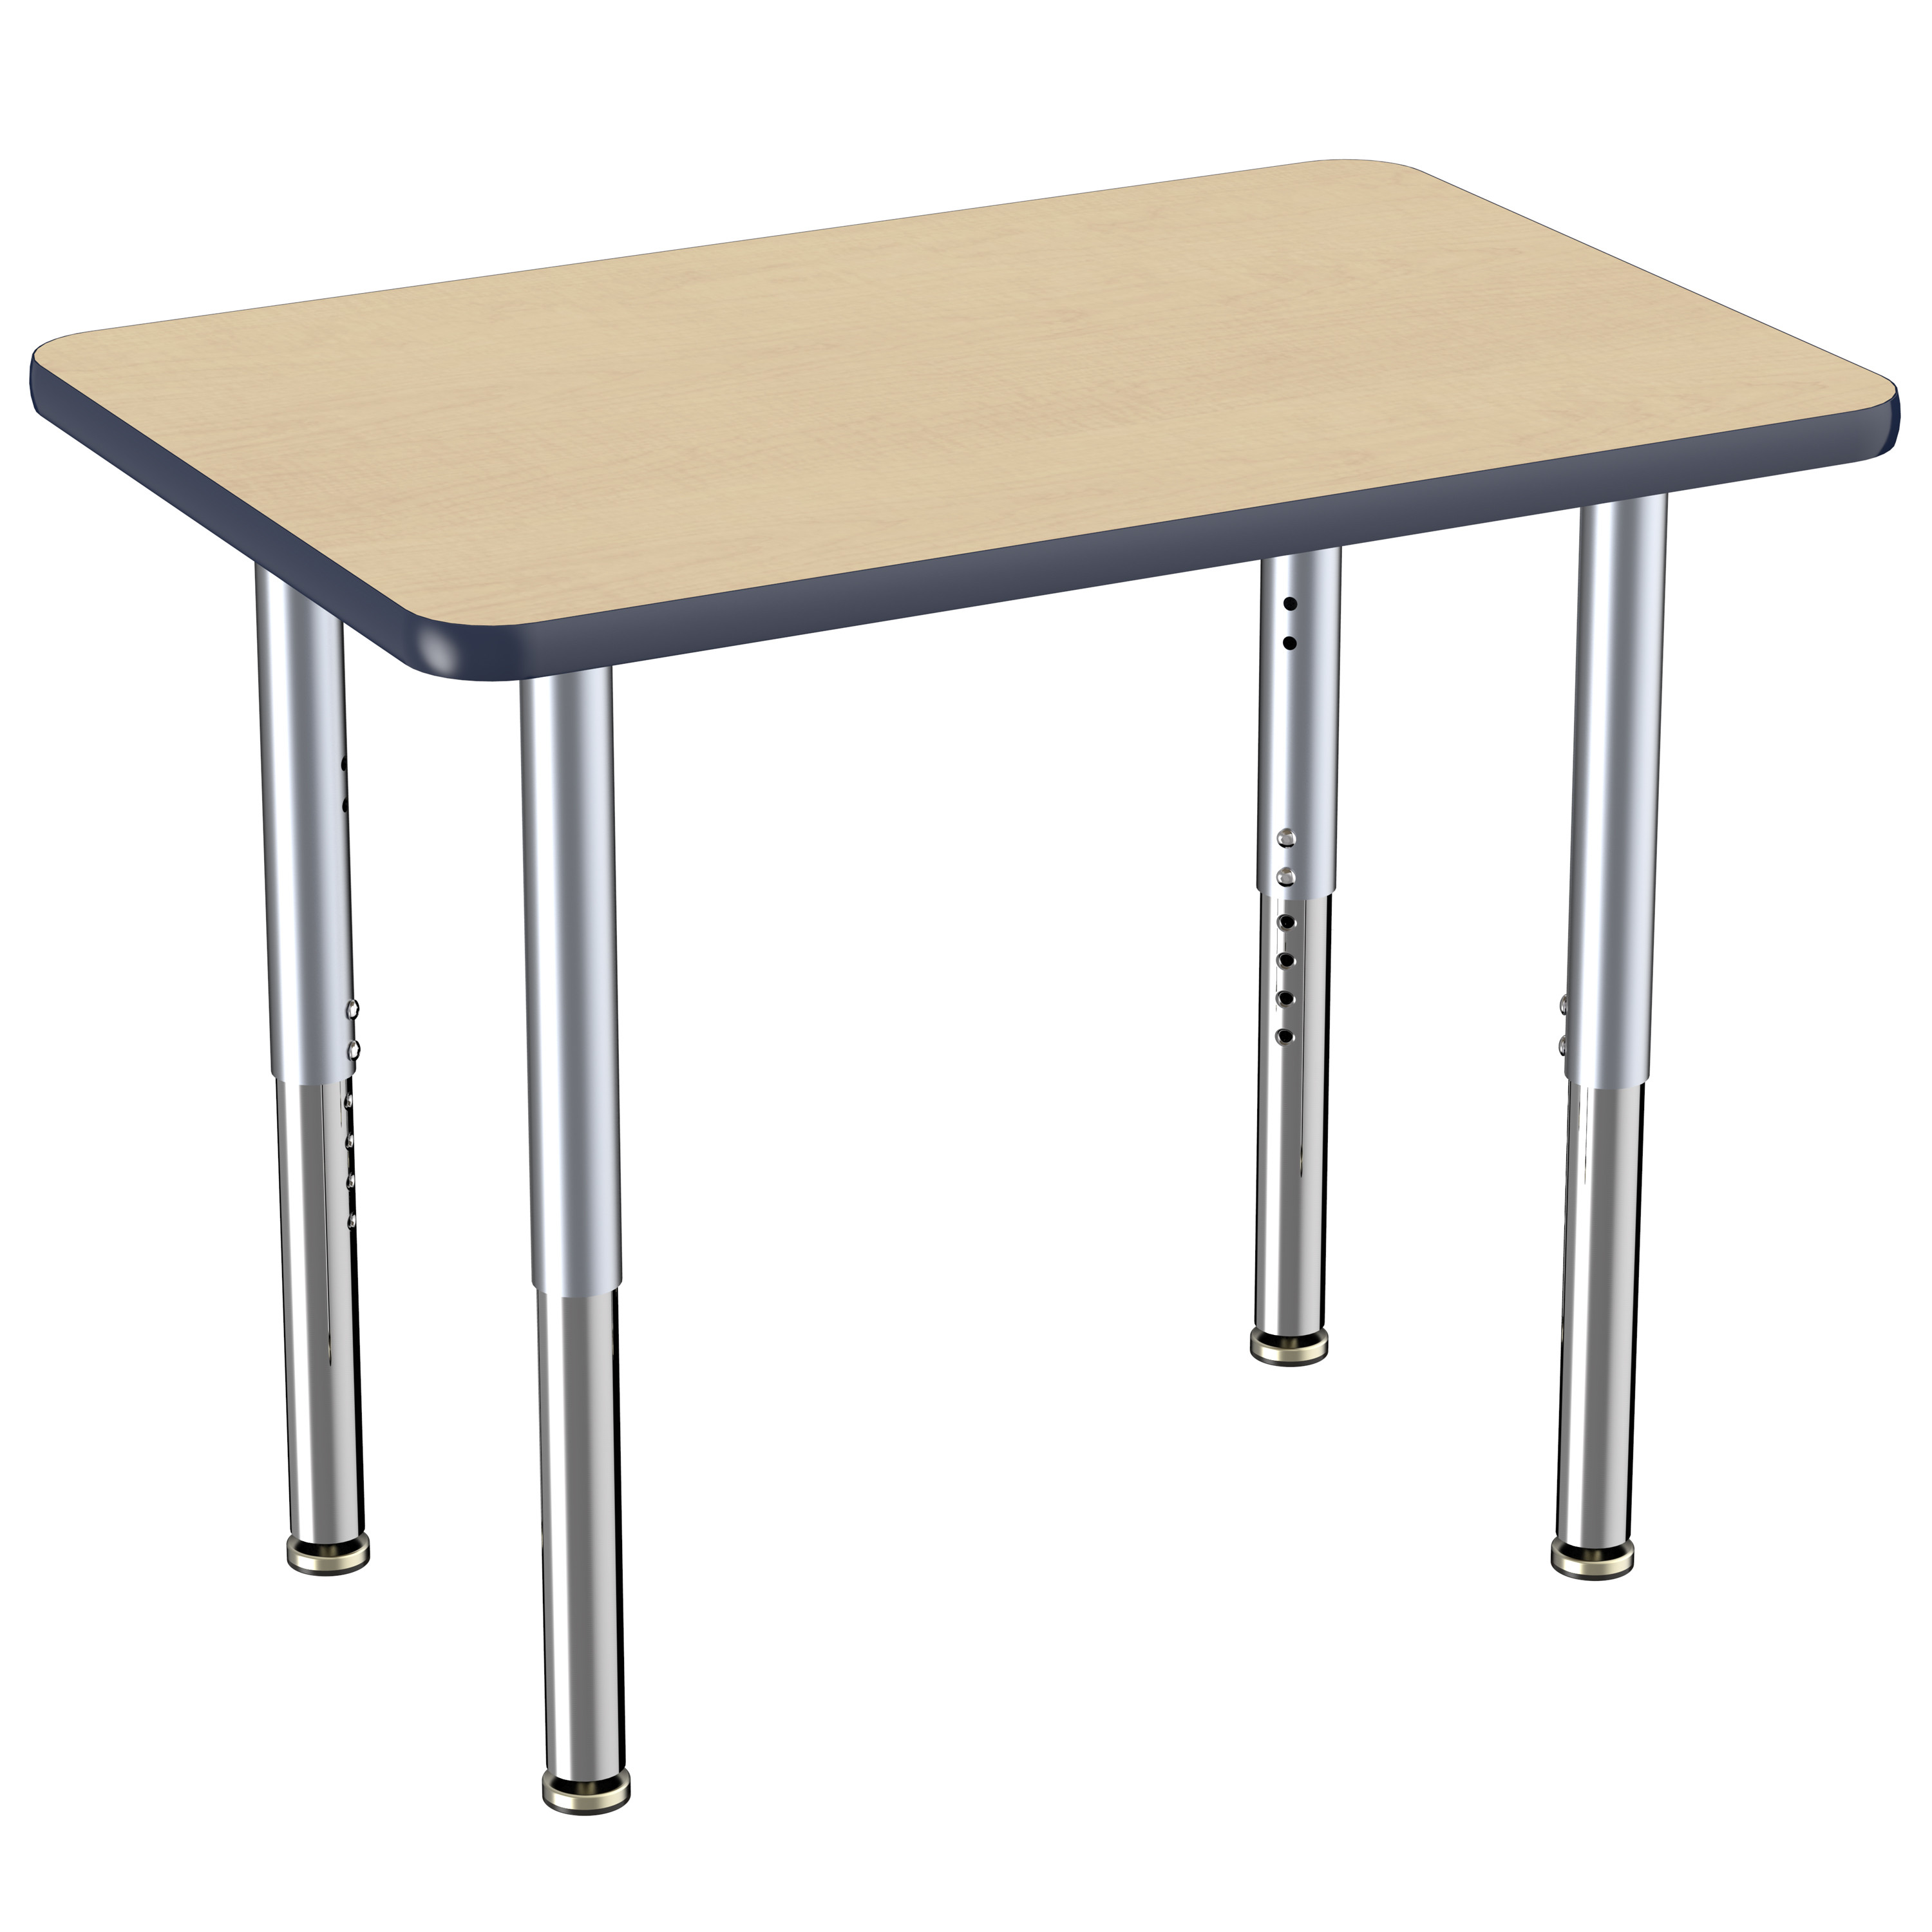 ECR4Kids 24in x 36in Rectangle Everyday T-Mold Adjustable Activity Table Maple/Navy/Silver - Super Leg